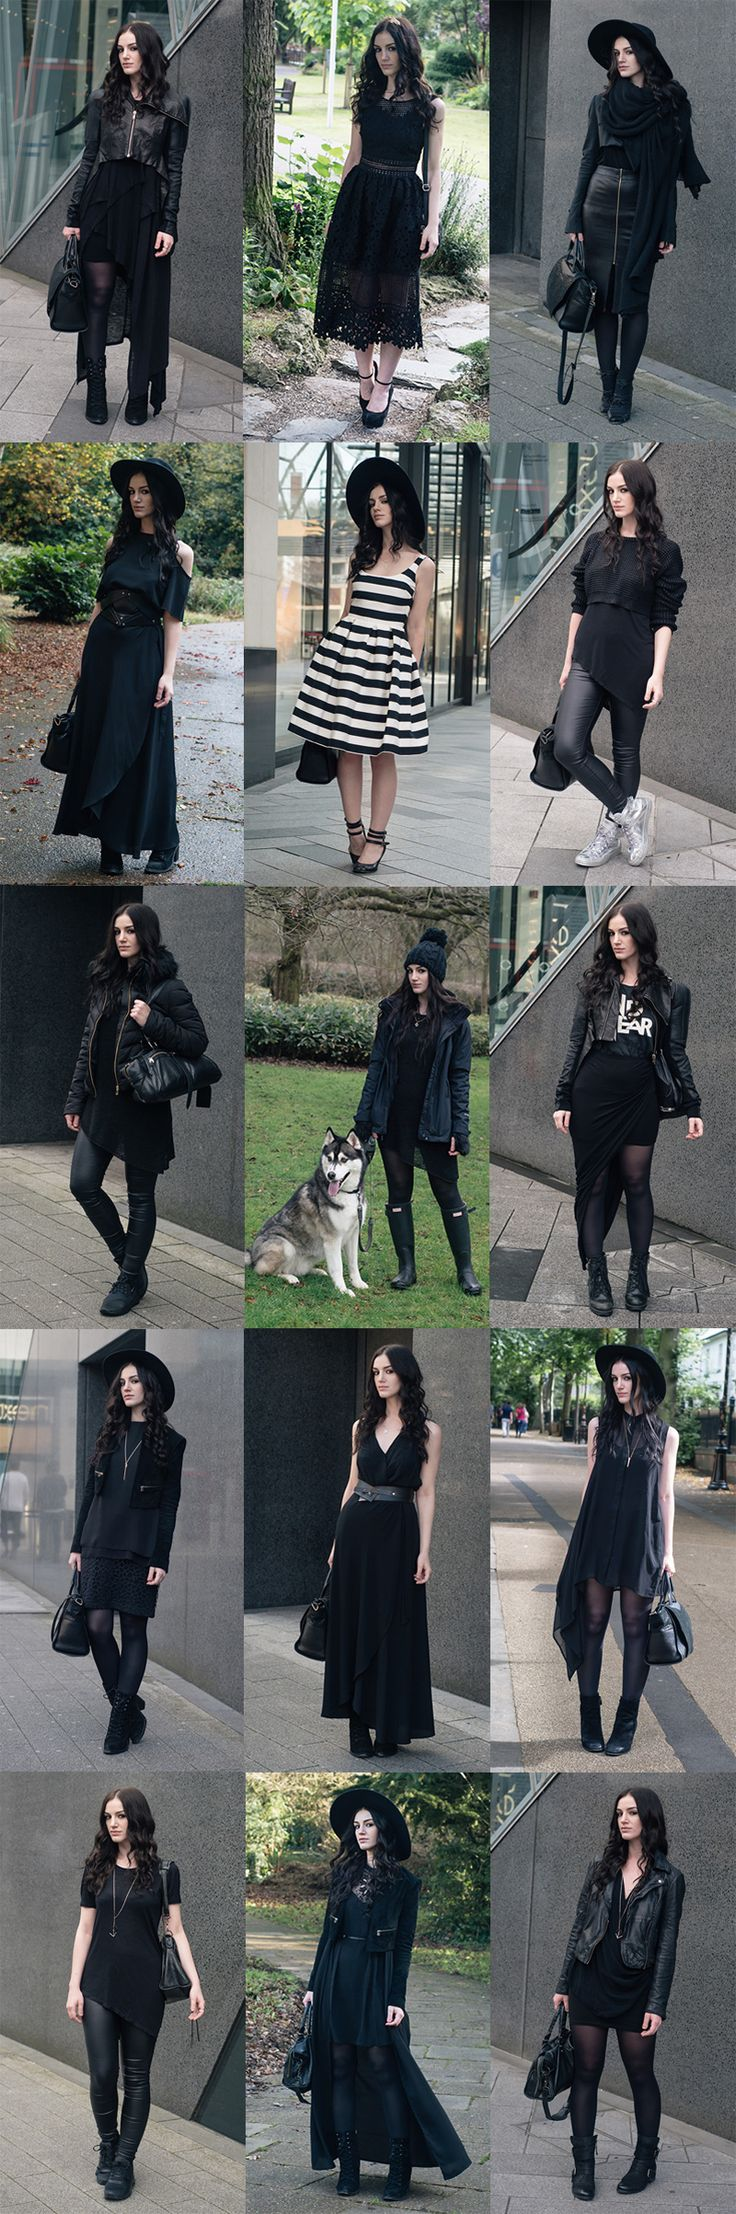 Best Outfits of 2016 #allblackeverything #outfit #ootd #streetstyle